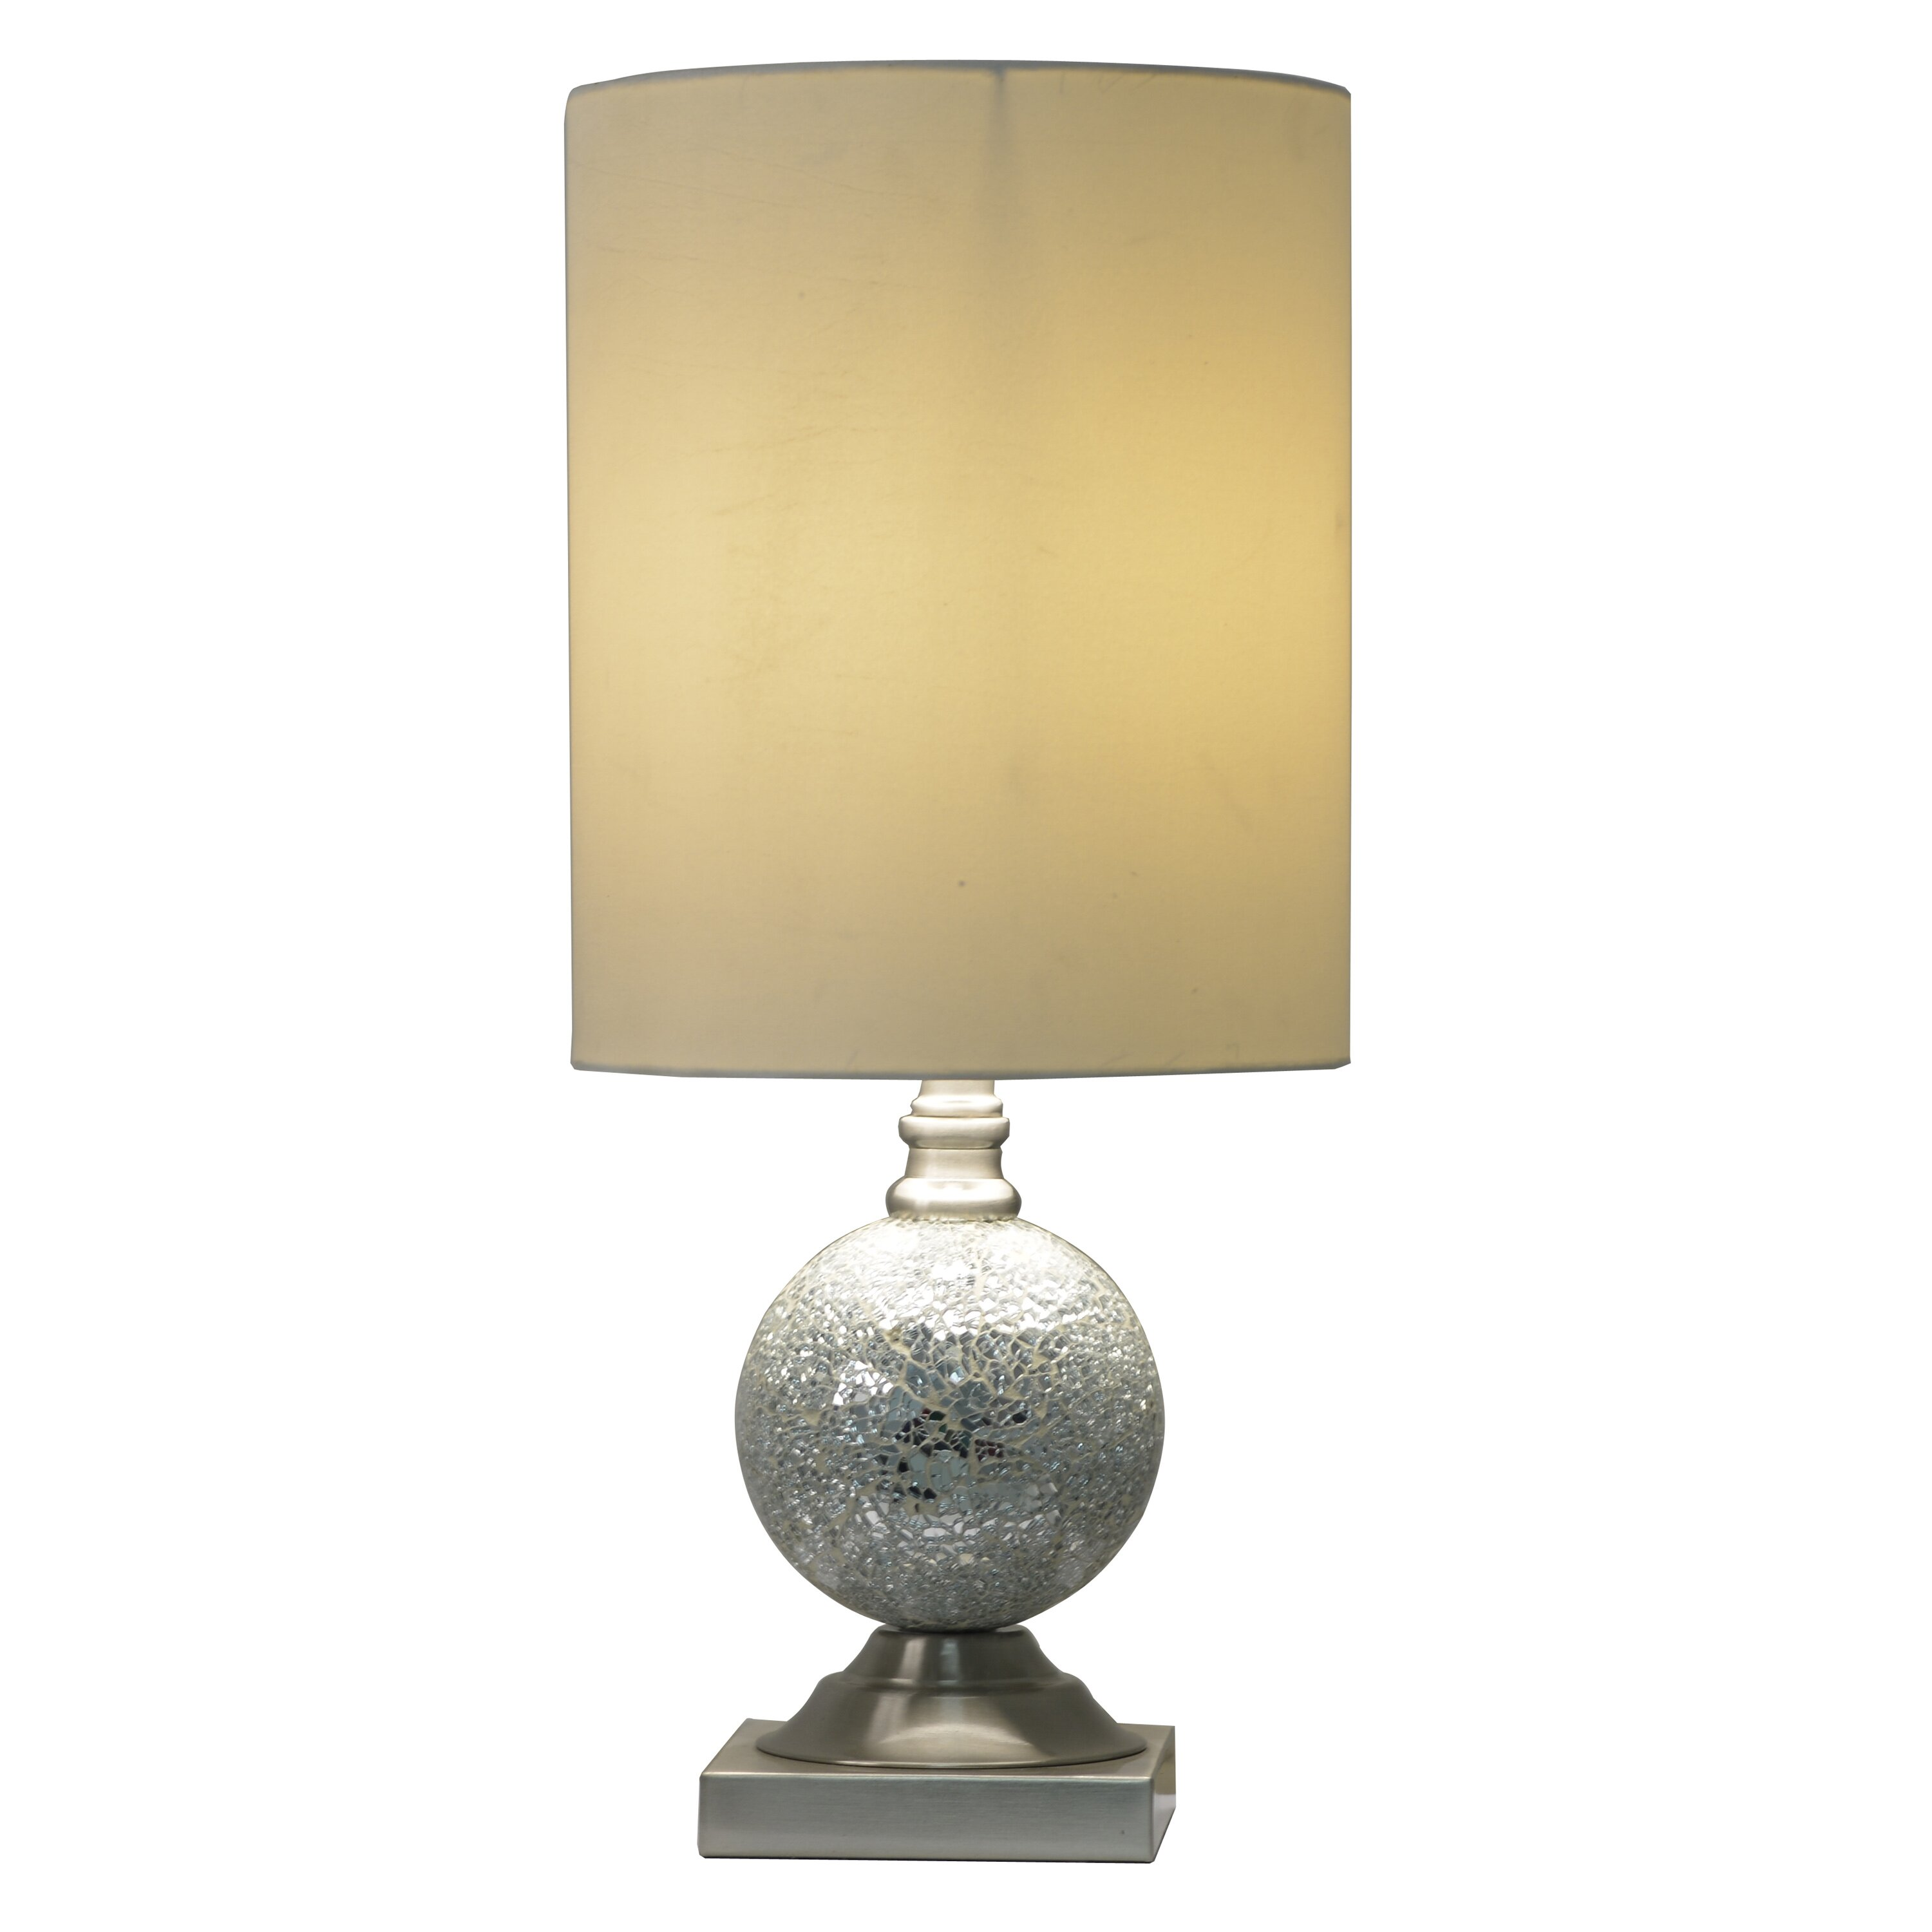 Beachcrest Home Newthorpe 20 Table Lamp